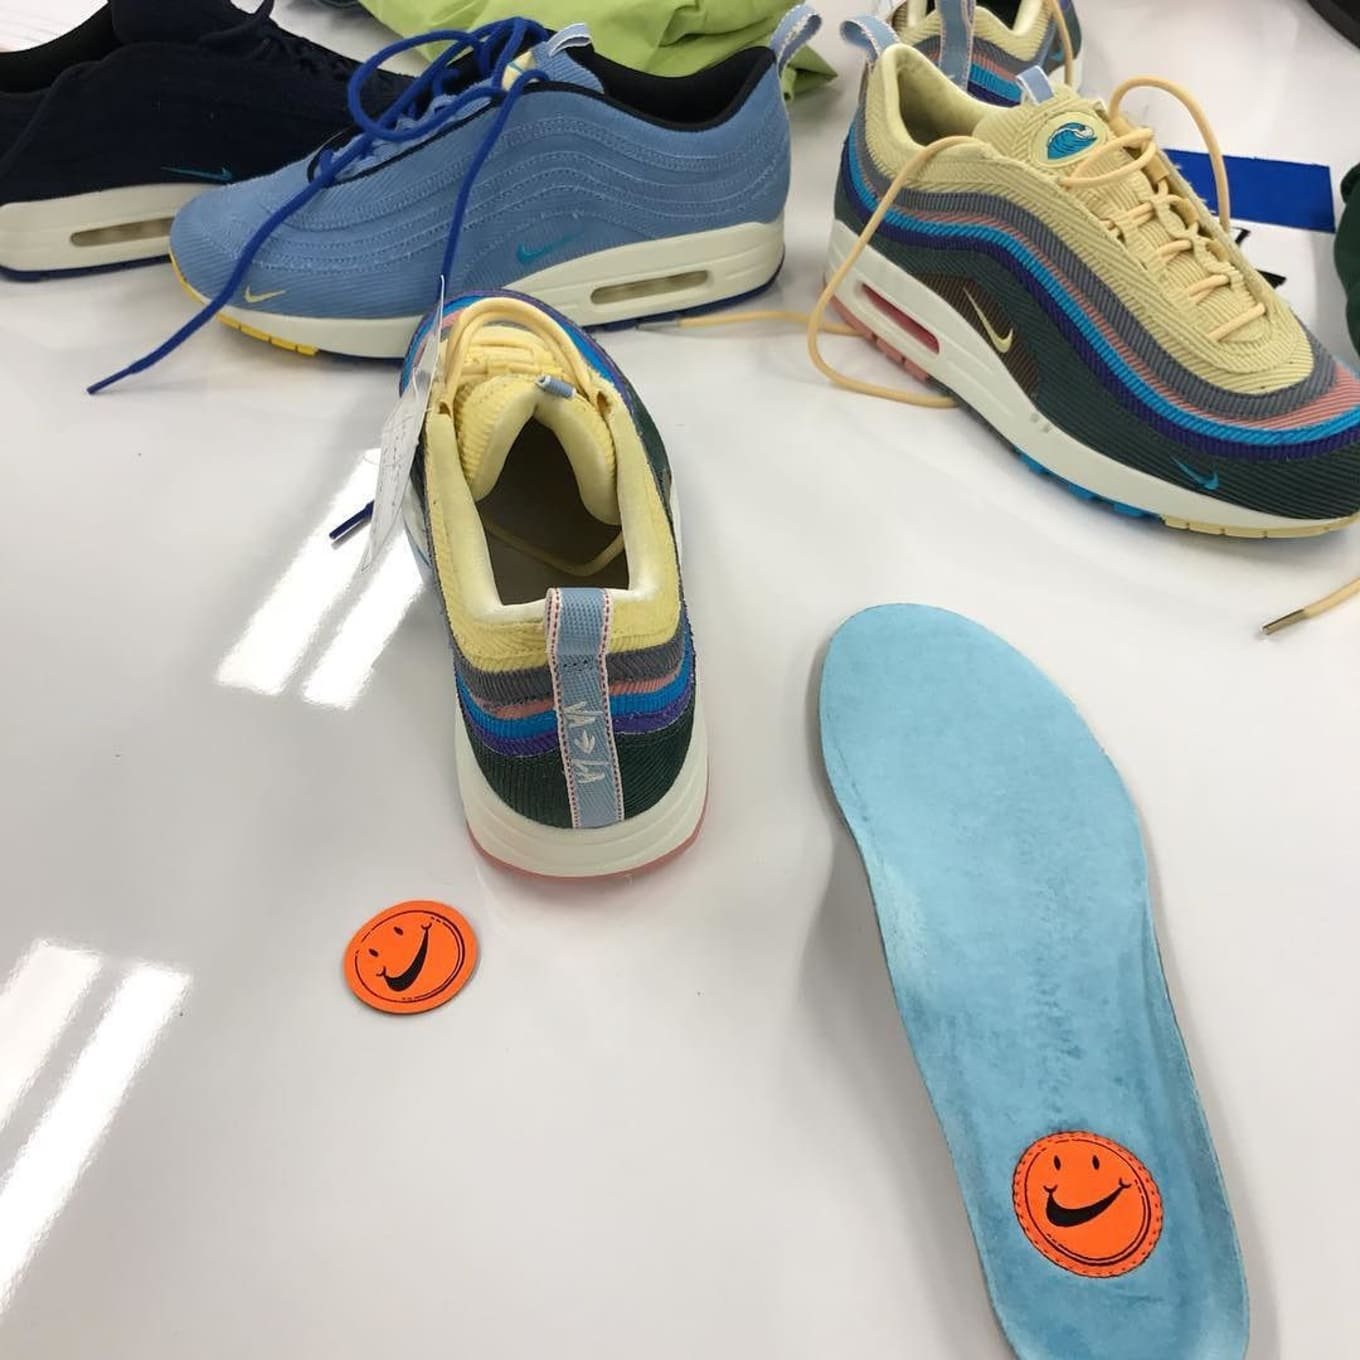 Sean Wotherspoon x Nike Air Max 197 Samples | Sole Collector